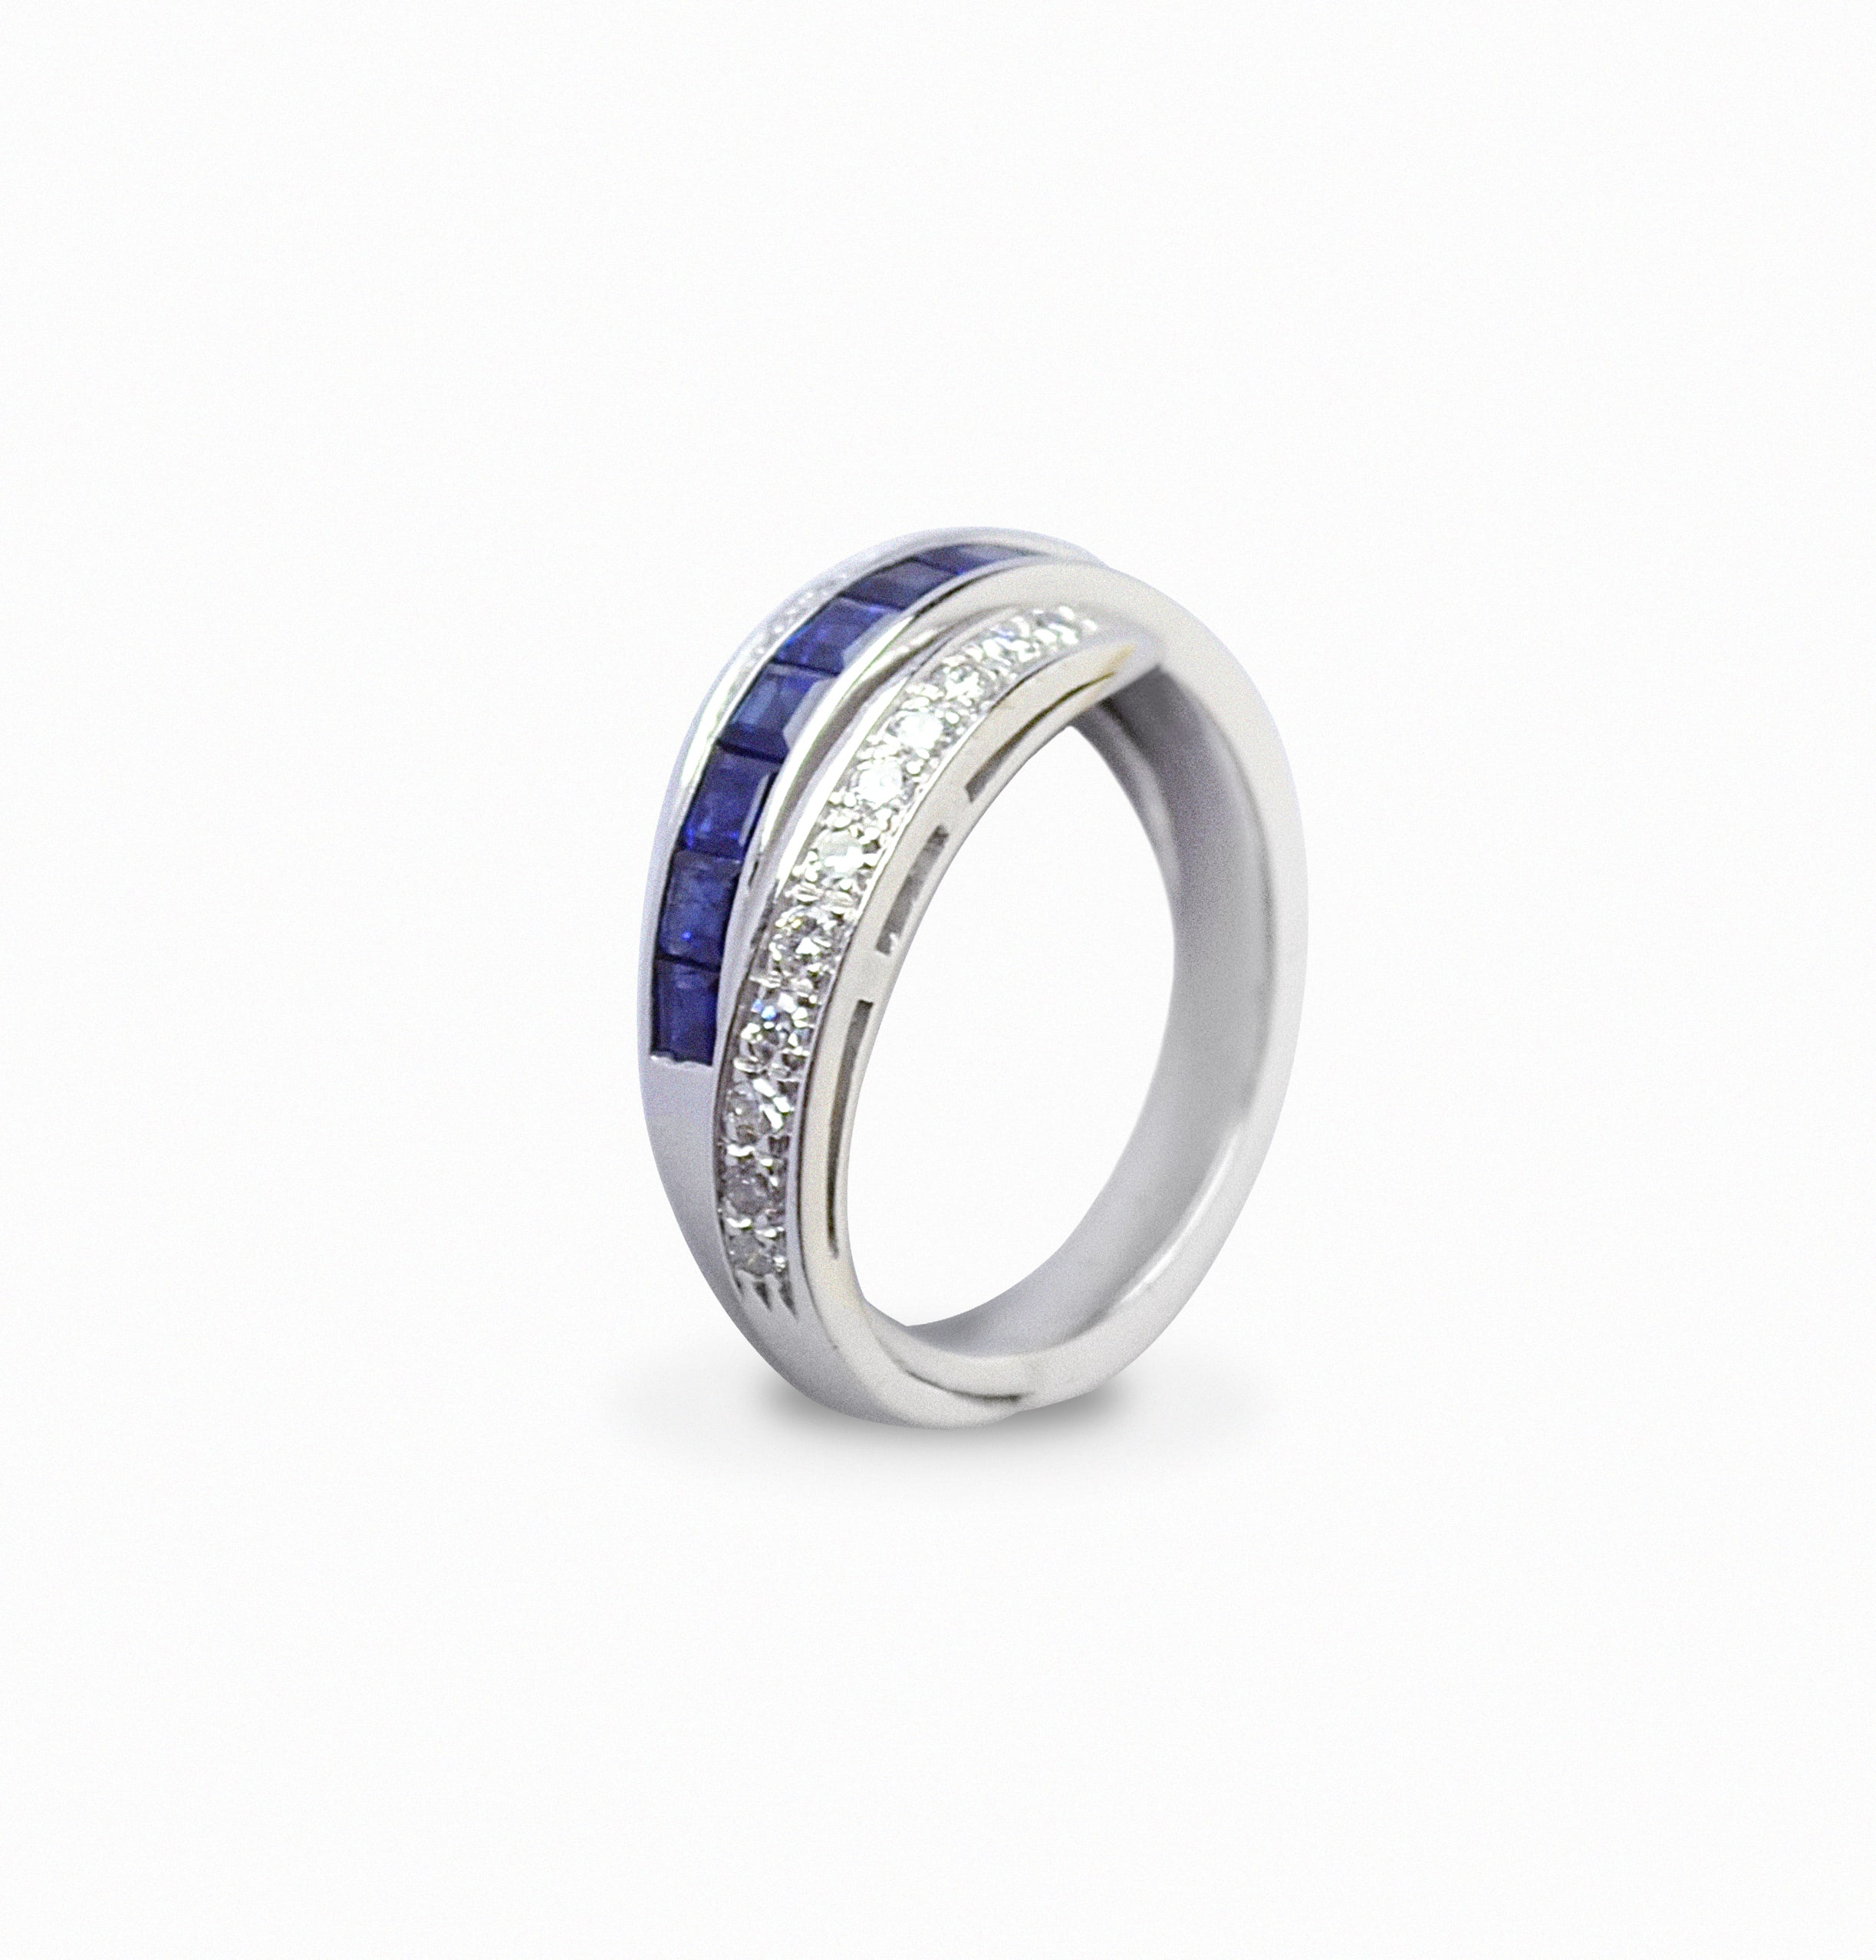 Real interweaving ring in Diamonds and Sapphires